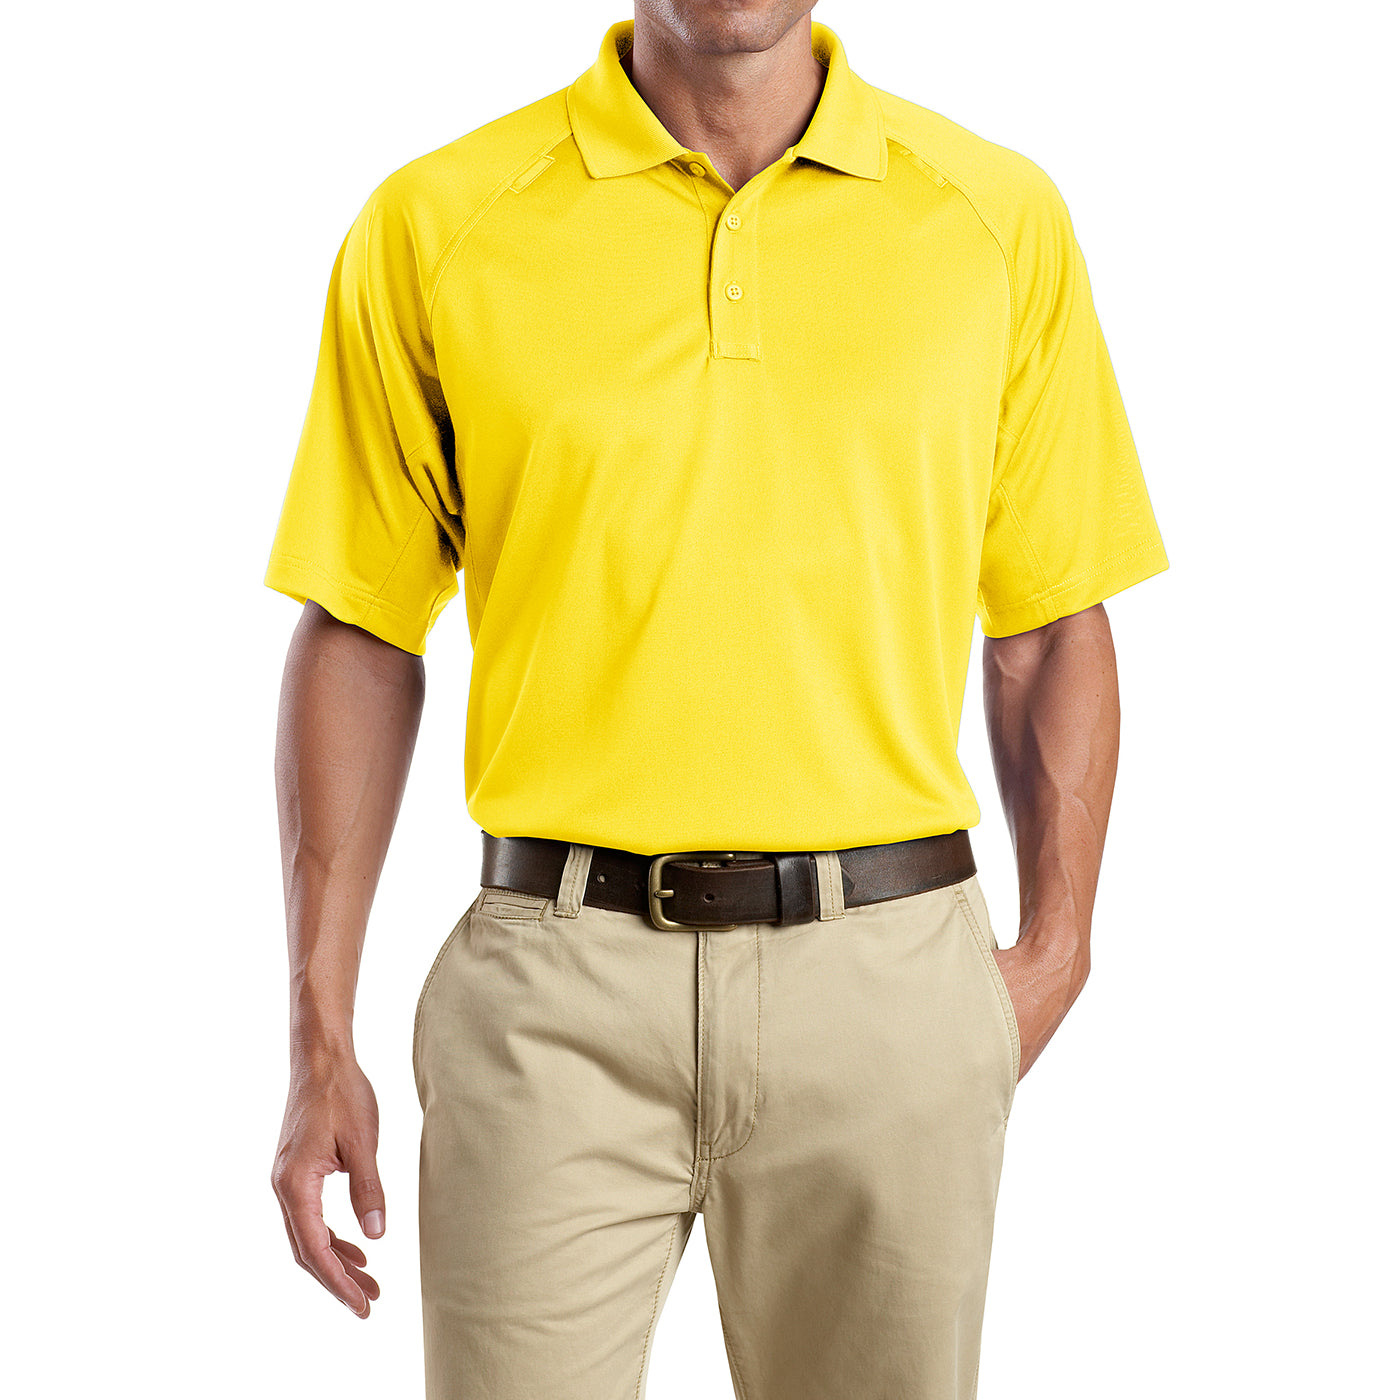 Men's Snag-Proof Tactical Polo Shirt - Yellow - Front